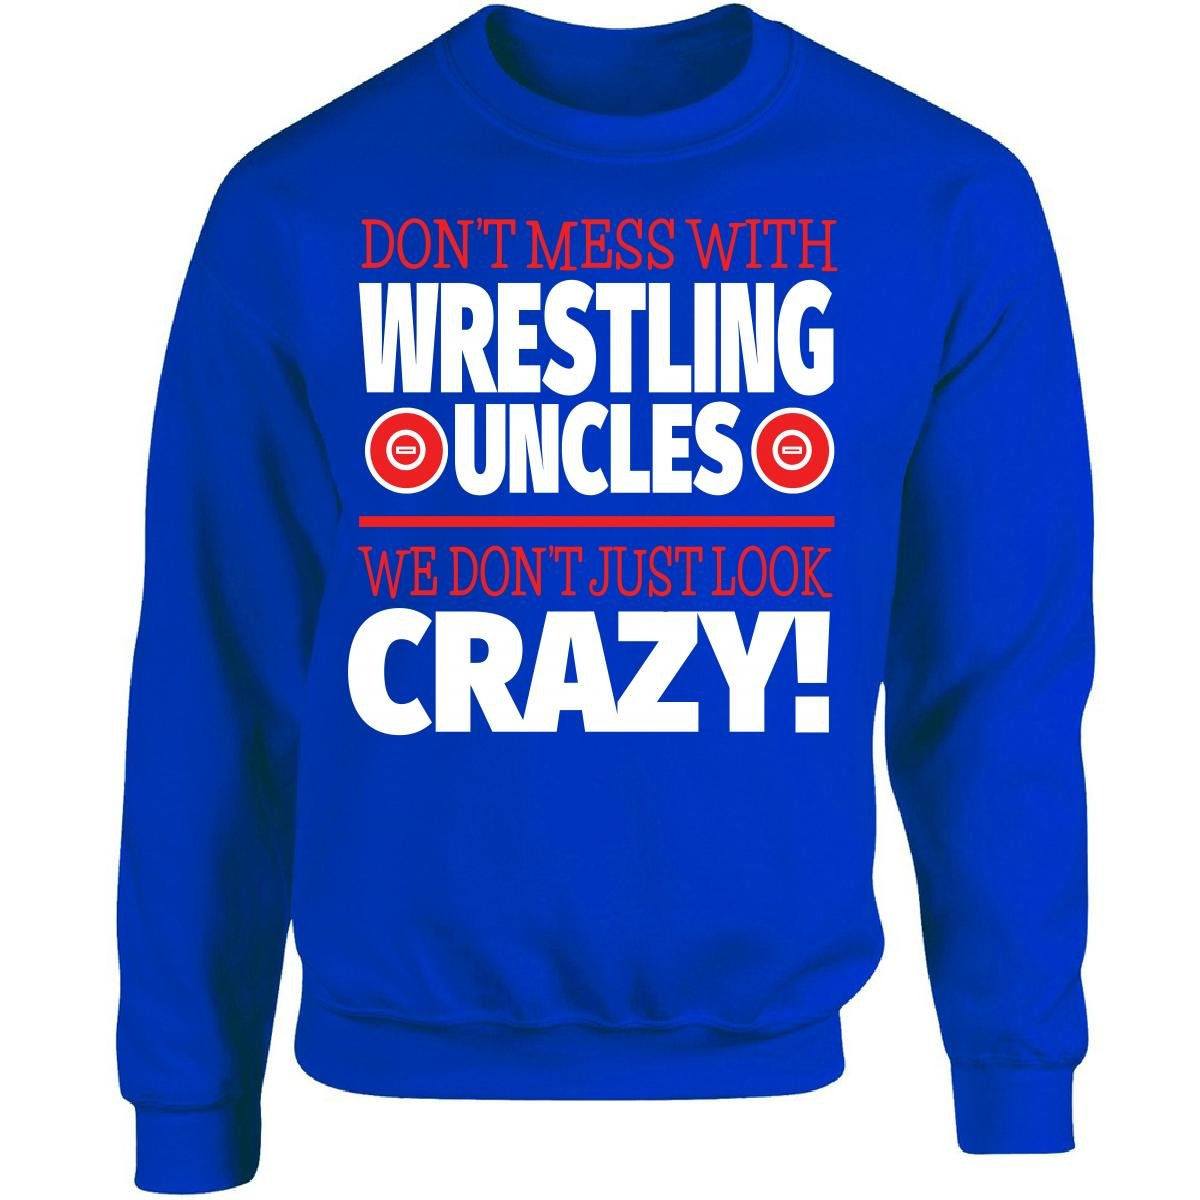 Eternally Gifted Crazy Wrestling Family - Don't Mess With Wrestling Uncles - Adult Sweatshirt by Eternally Gifted